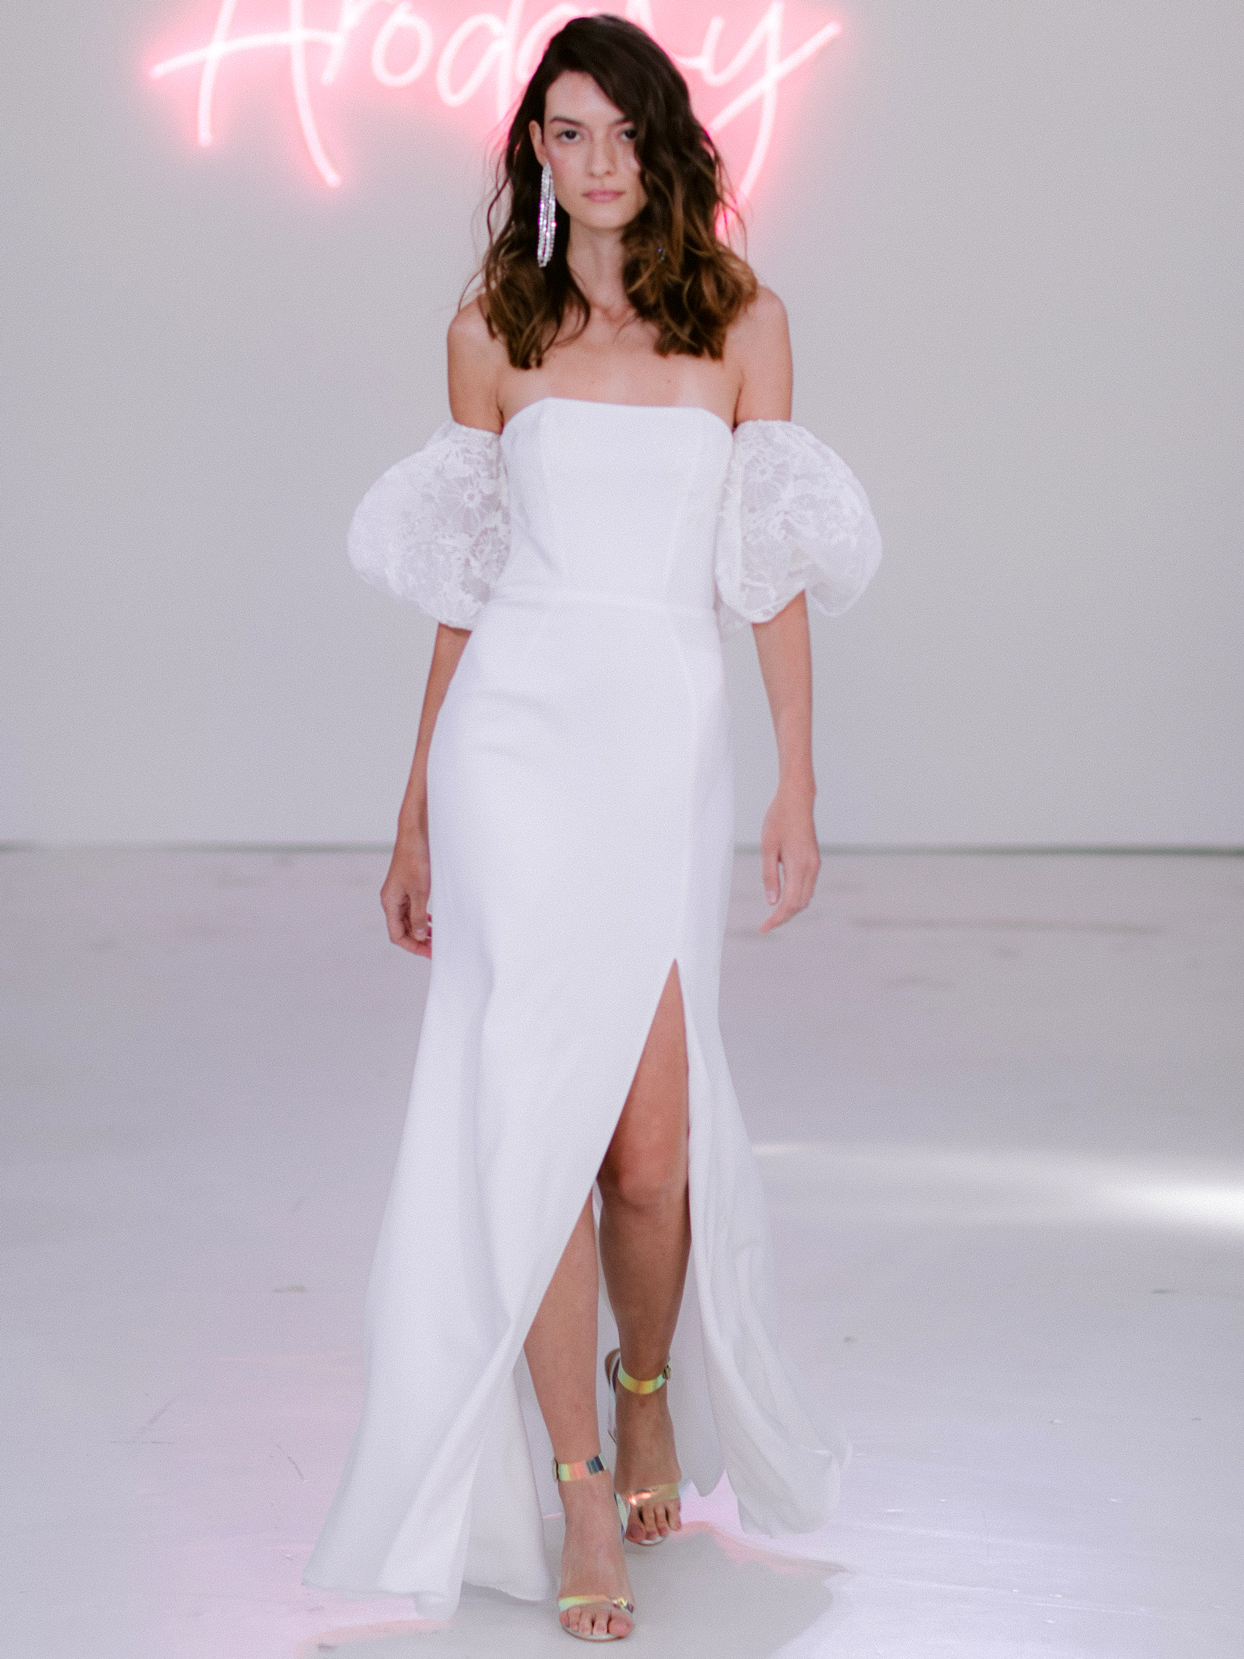 Rime Arodaky X The Mews Bridal off-the-shoulder puffed sleeves side slit wedding dress fall 2020